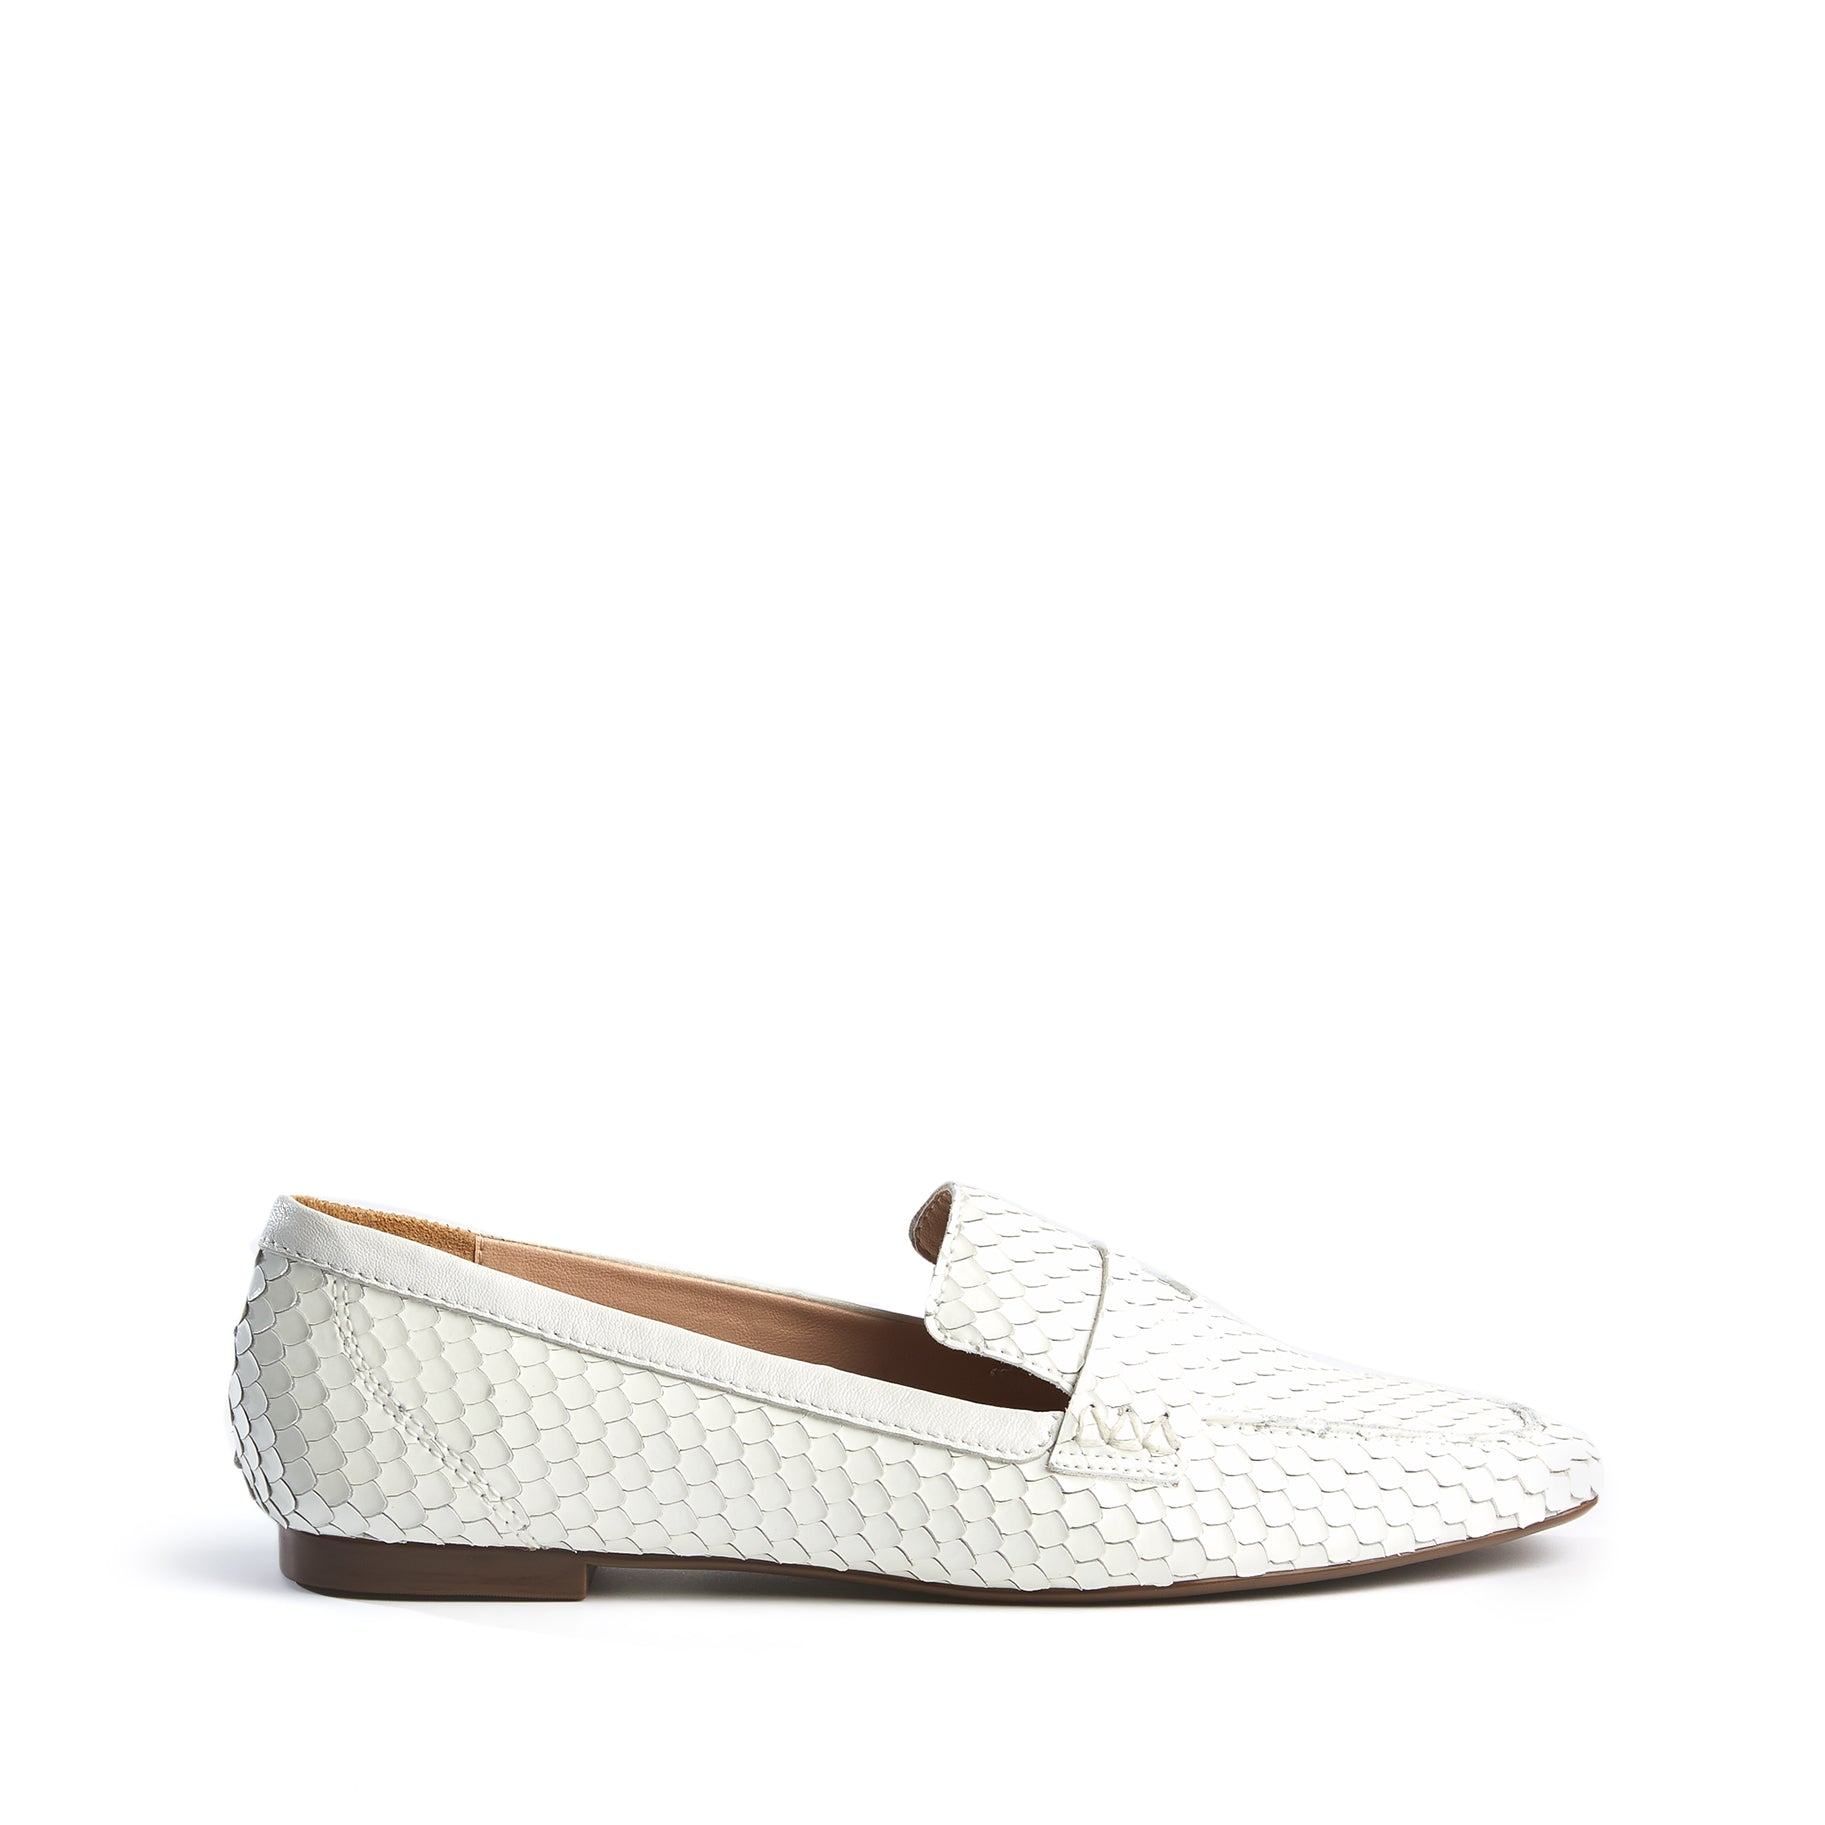 Ladonna Flats White Snake Embossed Leather